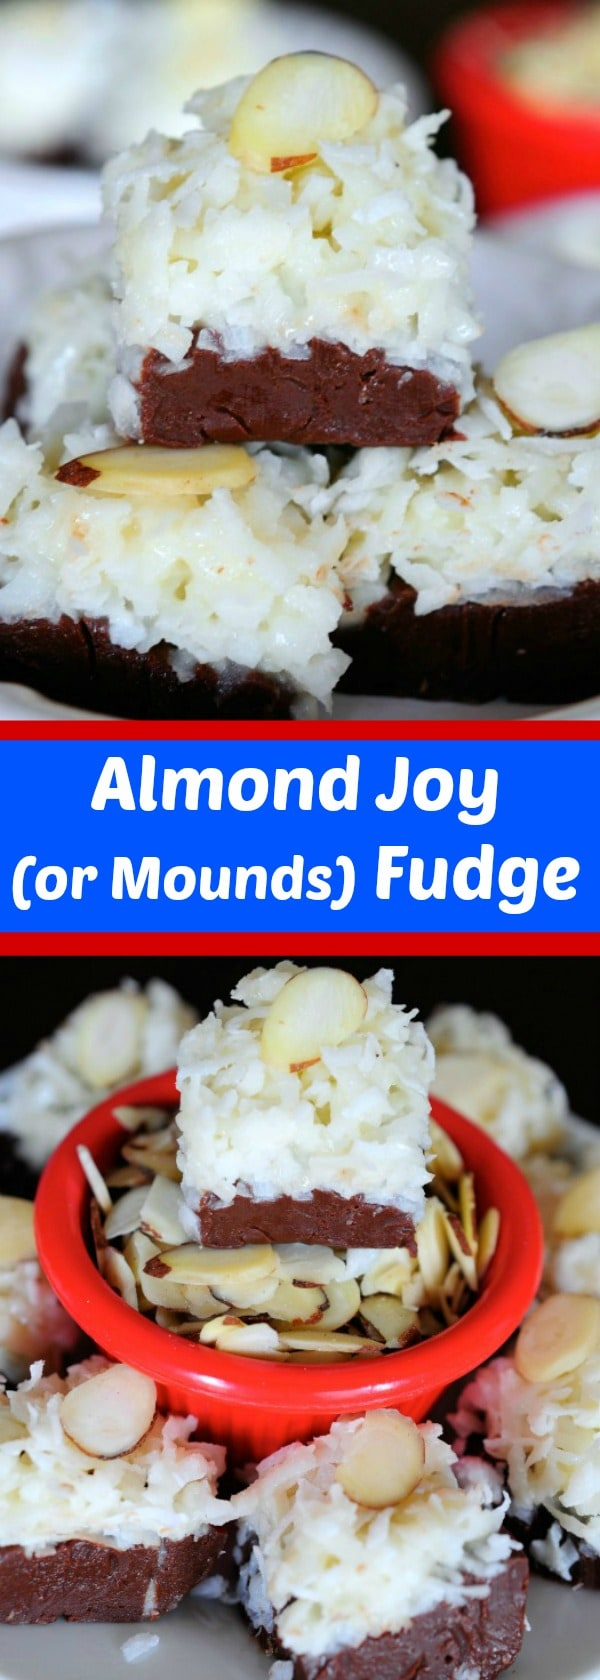 Almond Joy Fudge - Easy no fail fudge - leave off the almonds to make them Mounds Fudge!